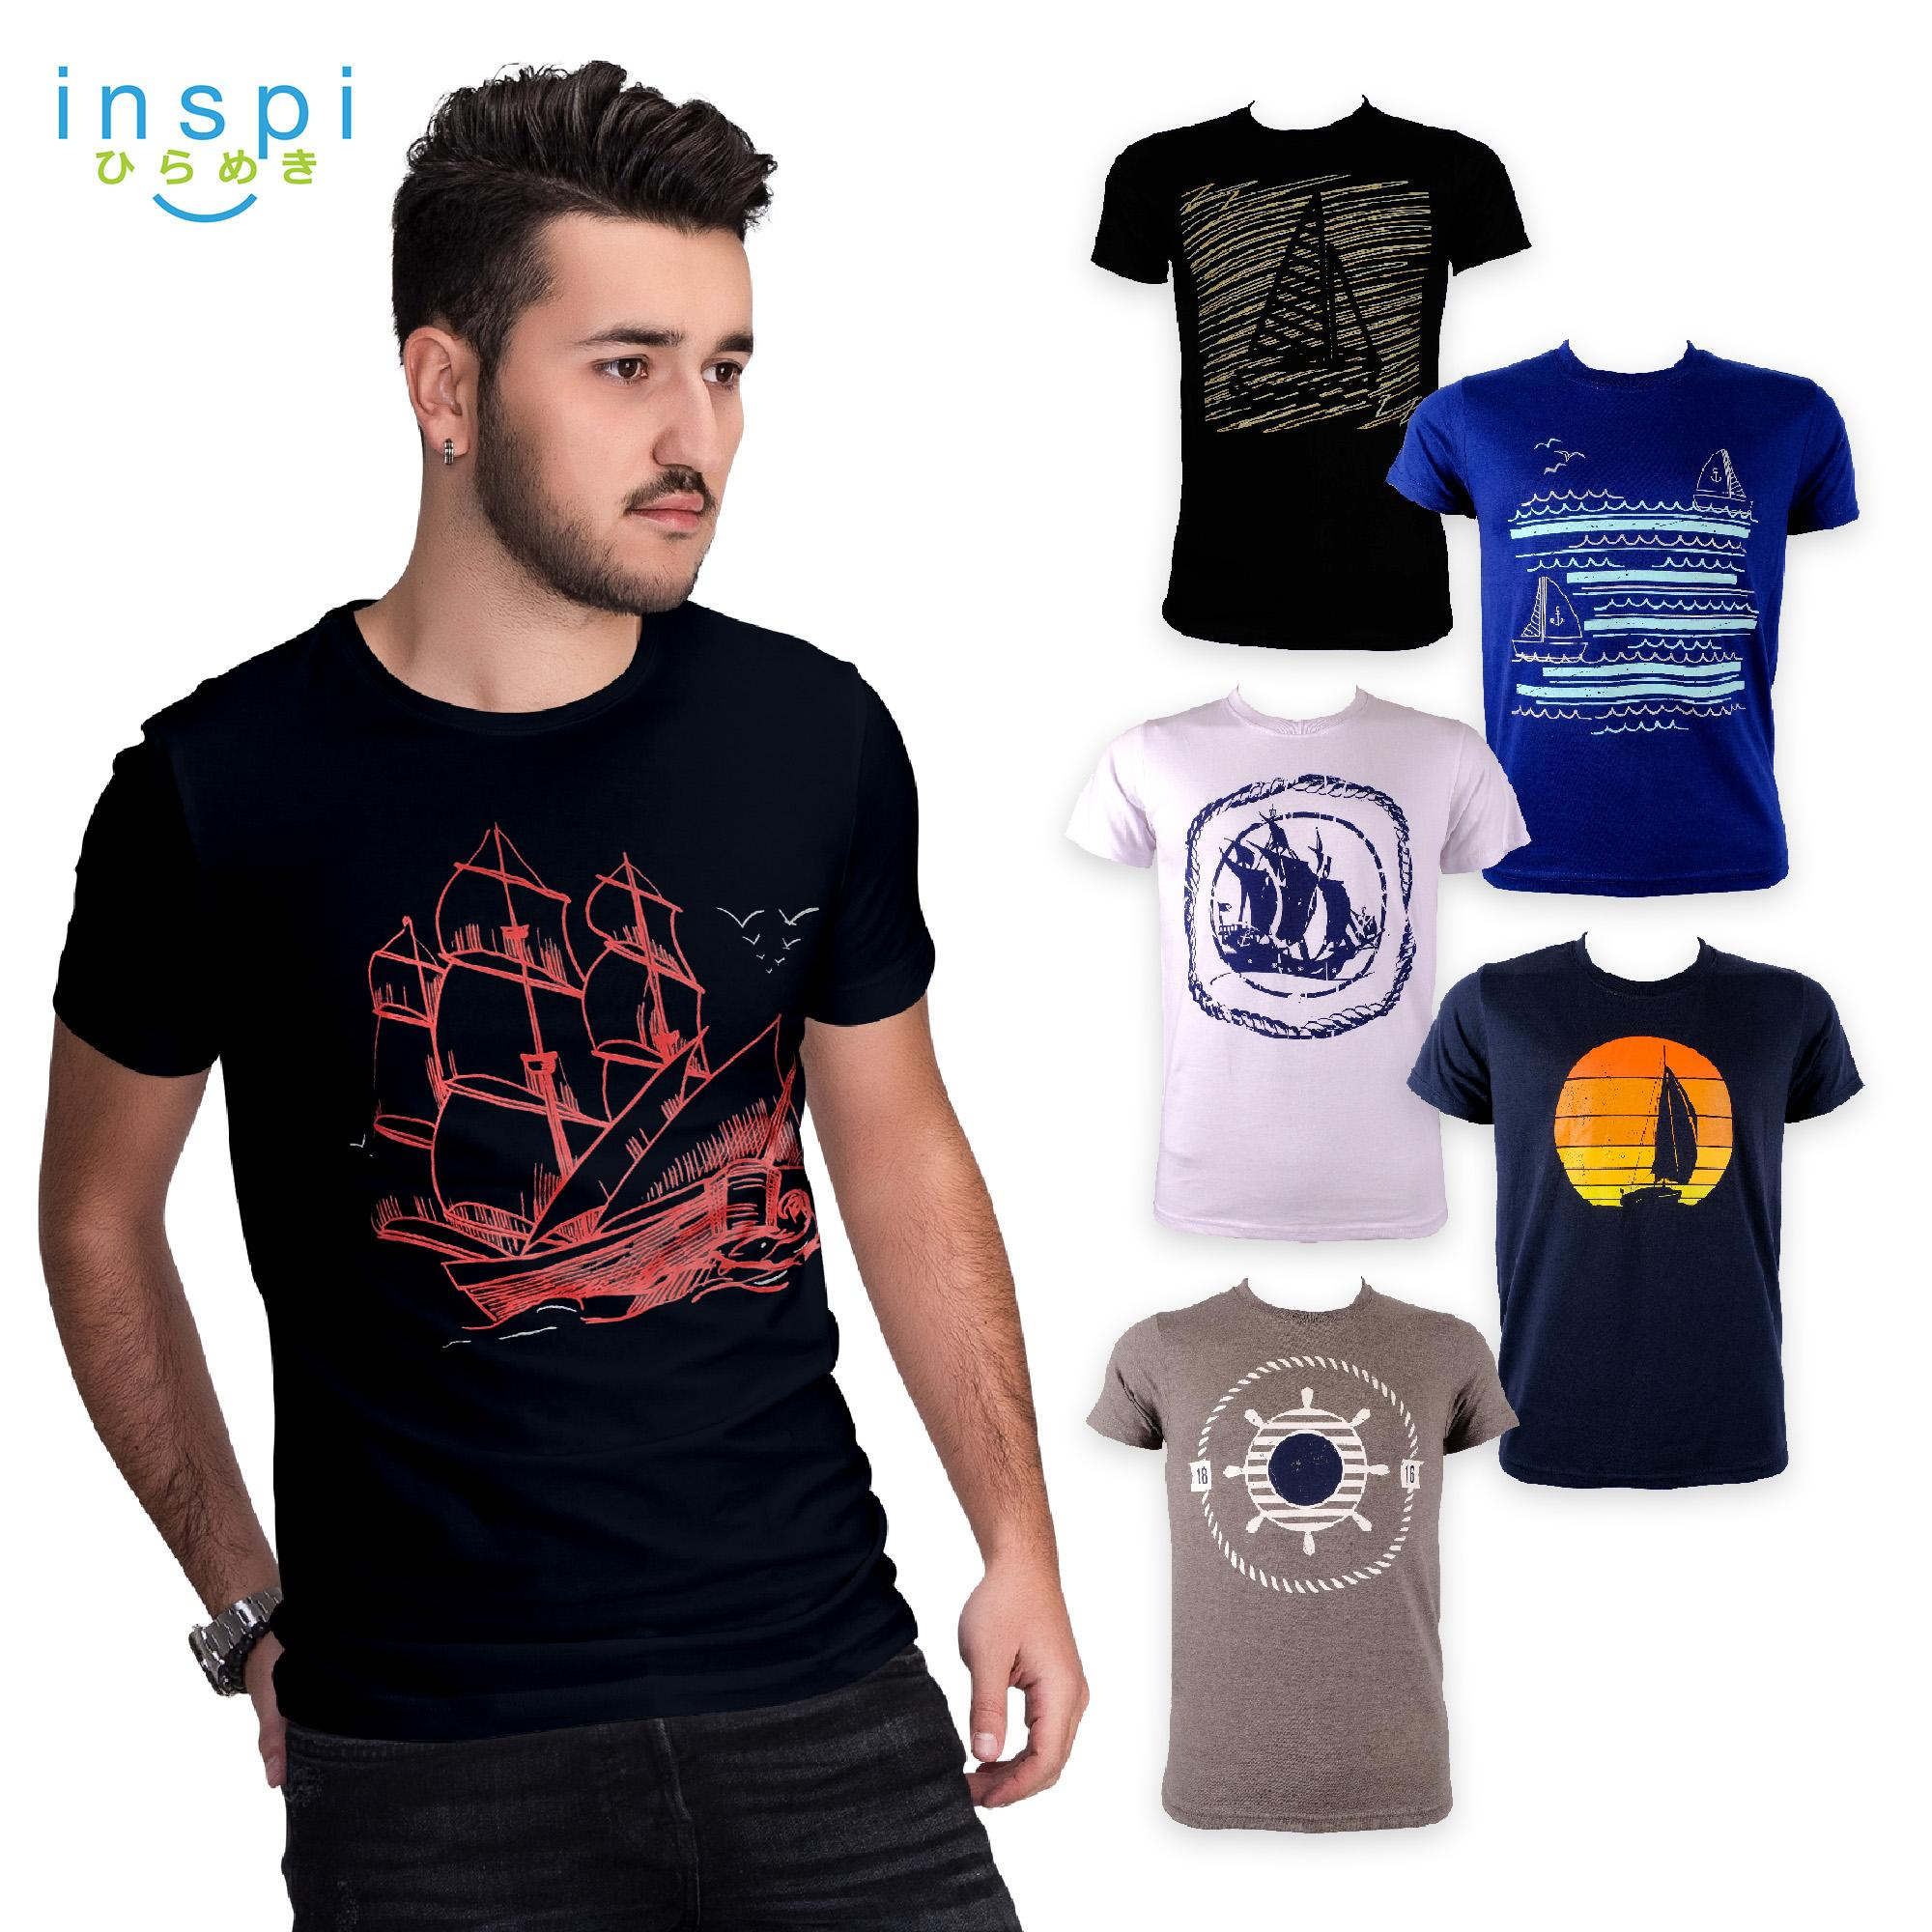 a48fc4f4 INSPI Tees Sailing Collection tshirt printed graphic tee Mens t shirt shirts  for men tshirts sale